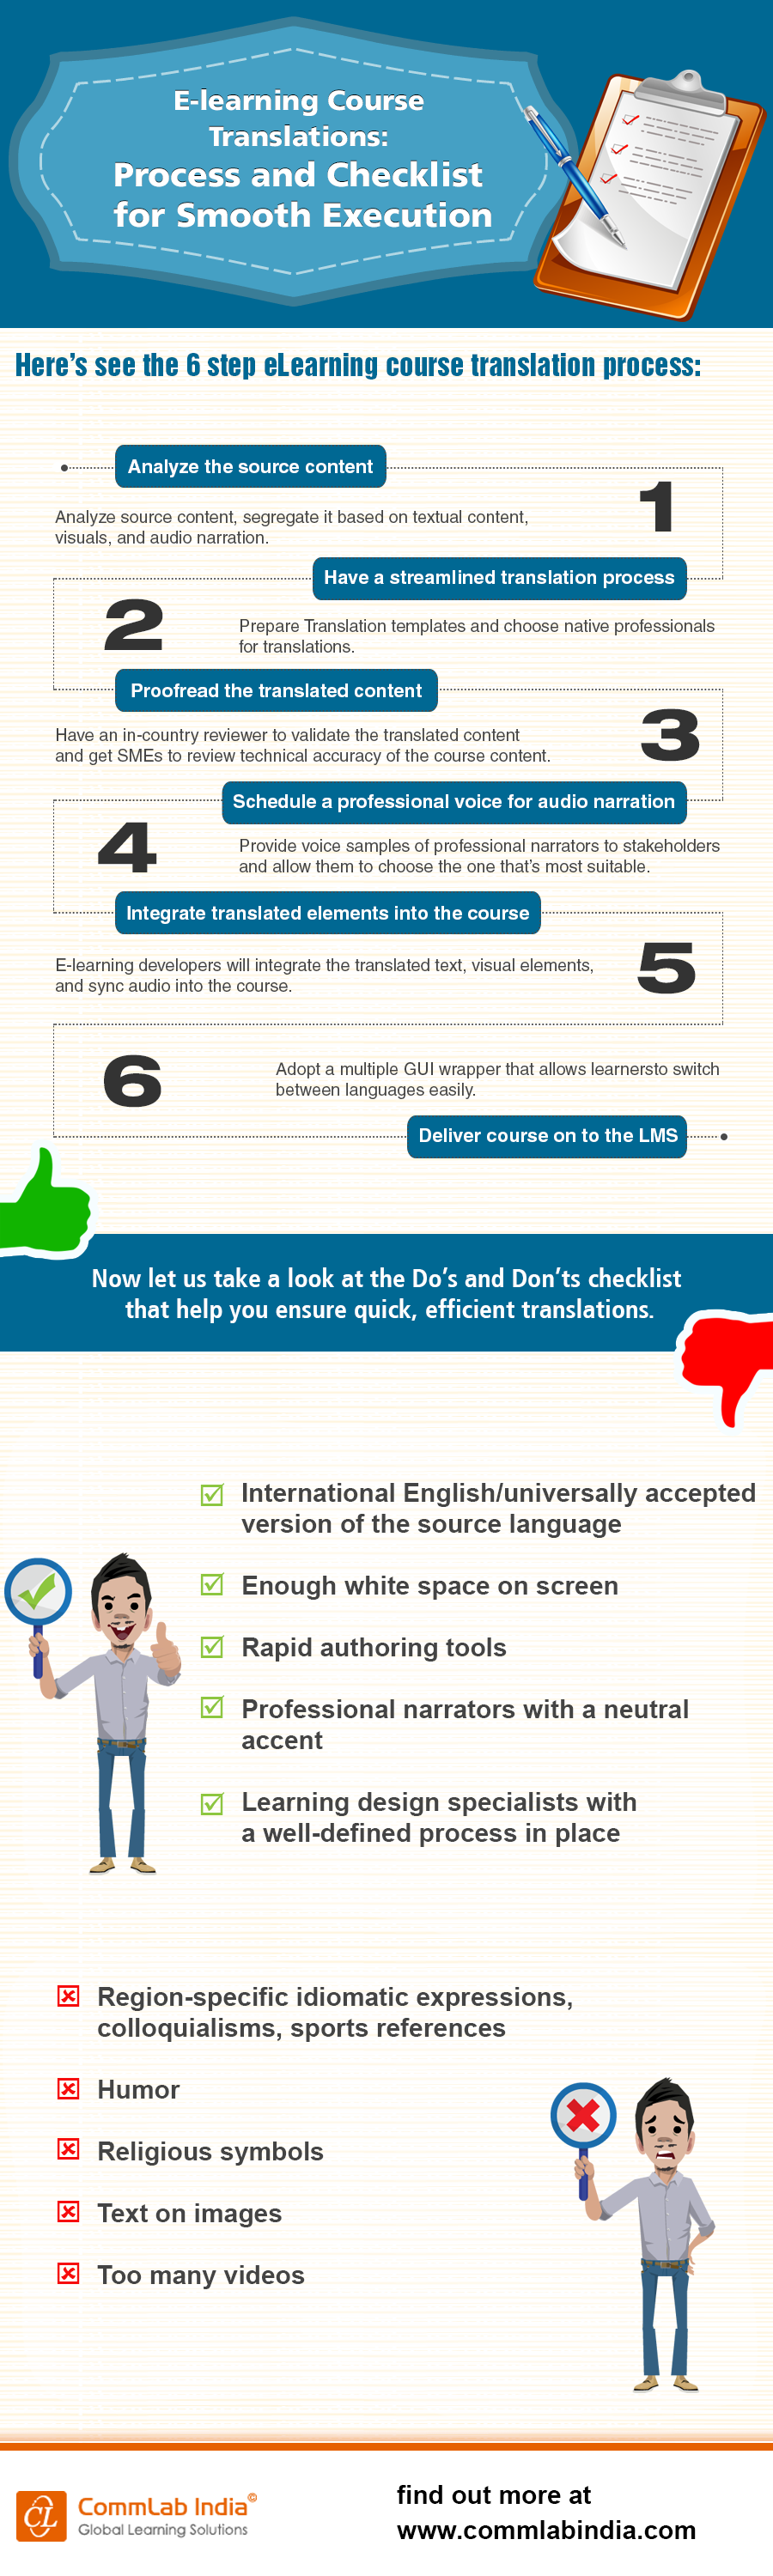 E-learning Course Translations: Process and Checklist for Smooth Execution [Infographic]